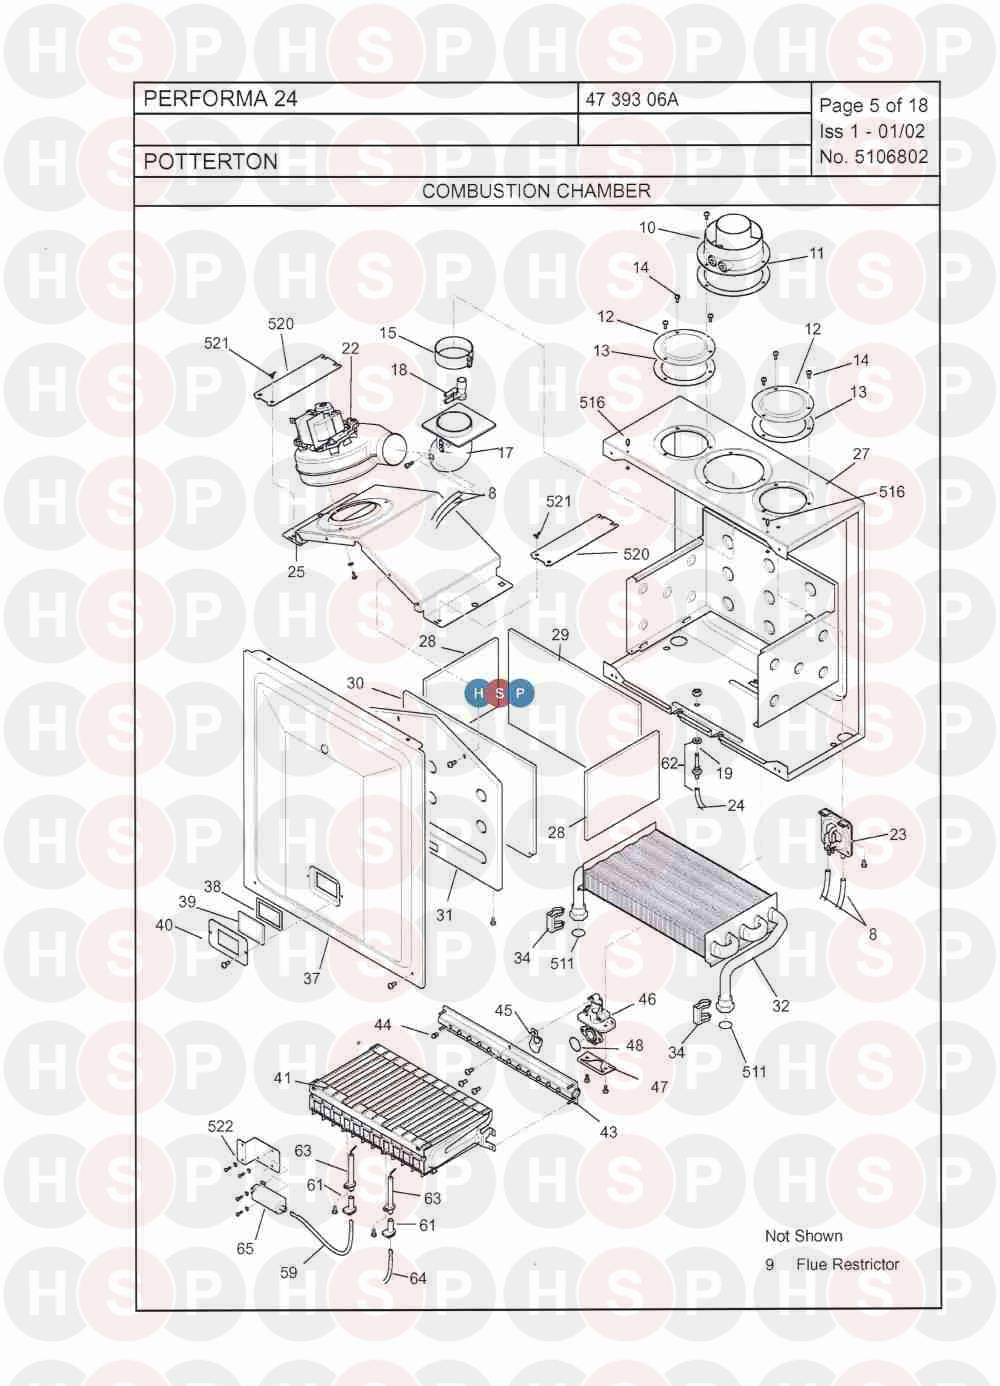 Potterton PERFORMA 28I Appliance Diagram (Combustion